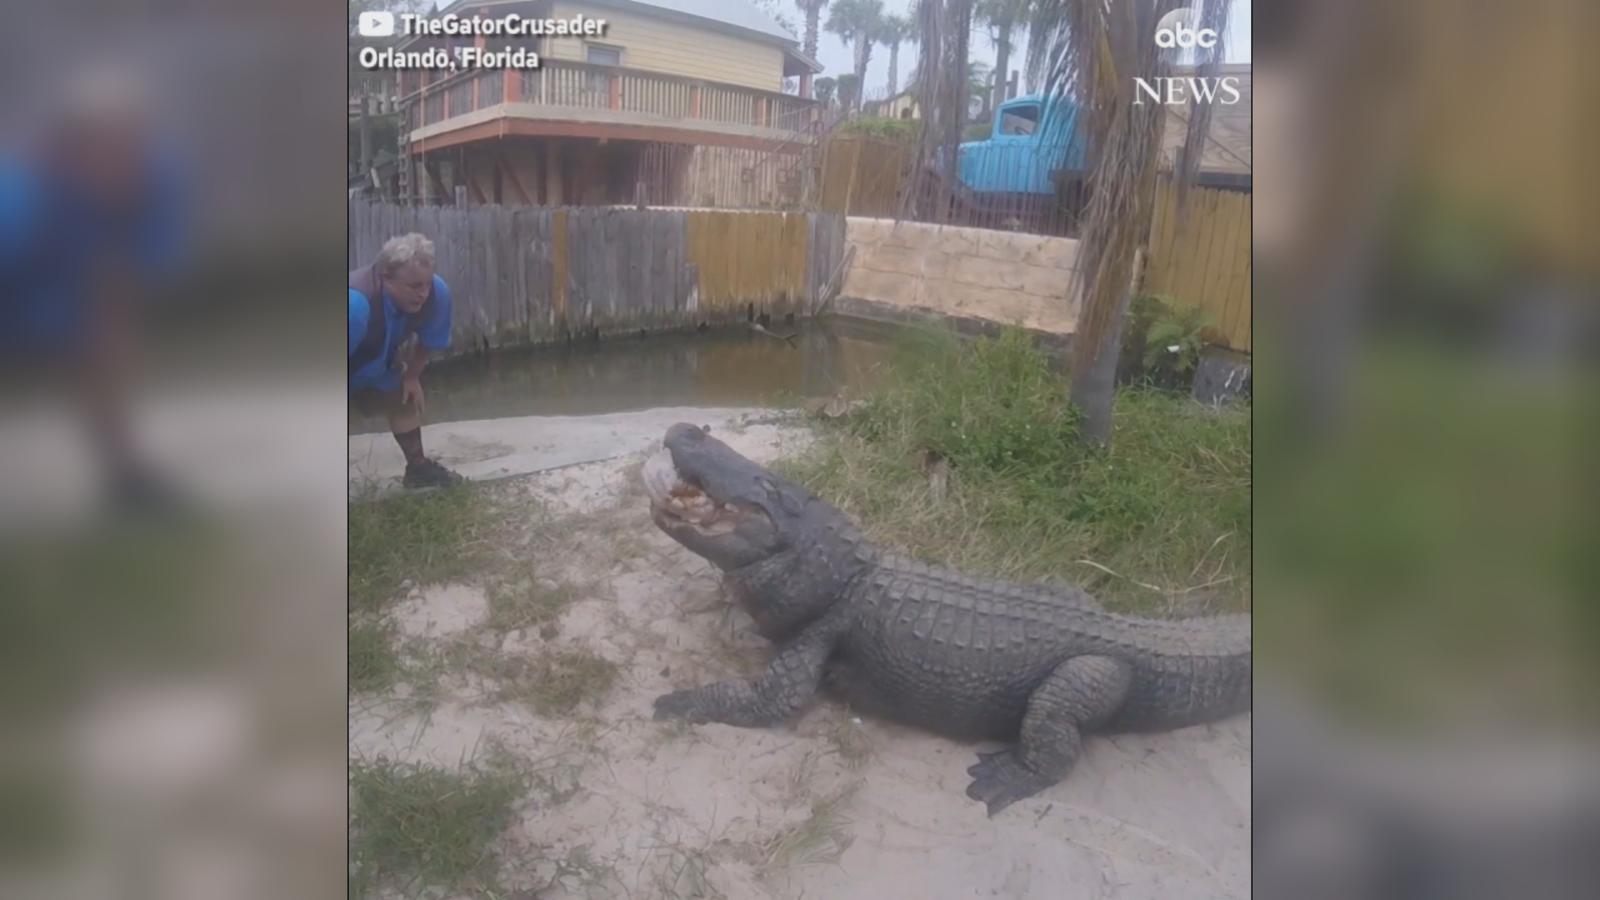 VIDEO: The large reptiles dined on turkey in Orlando, Florida.